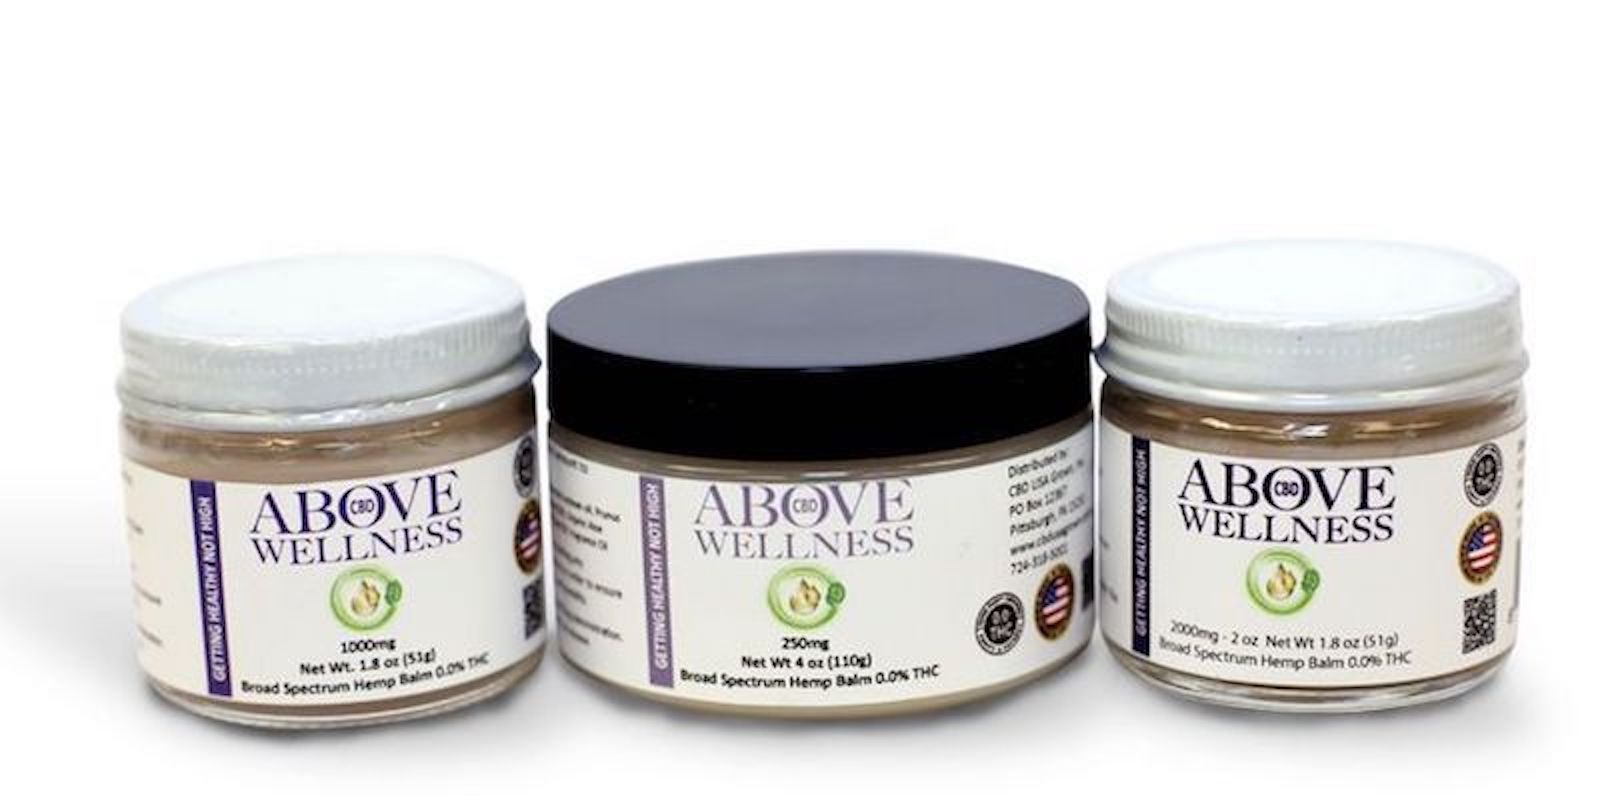 Above Wellness, 1000mg Pain Balm (White Lid)